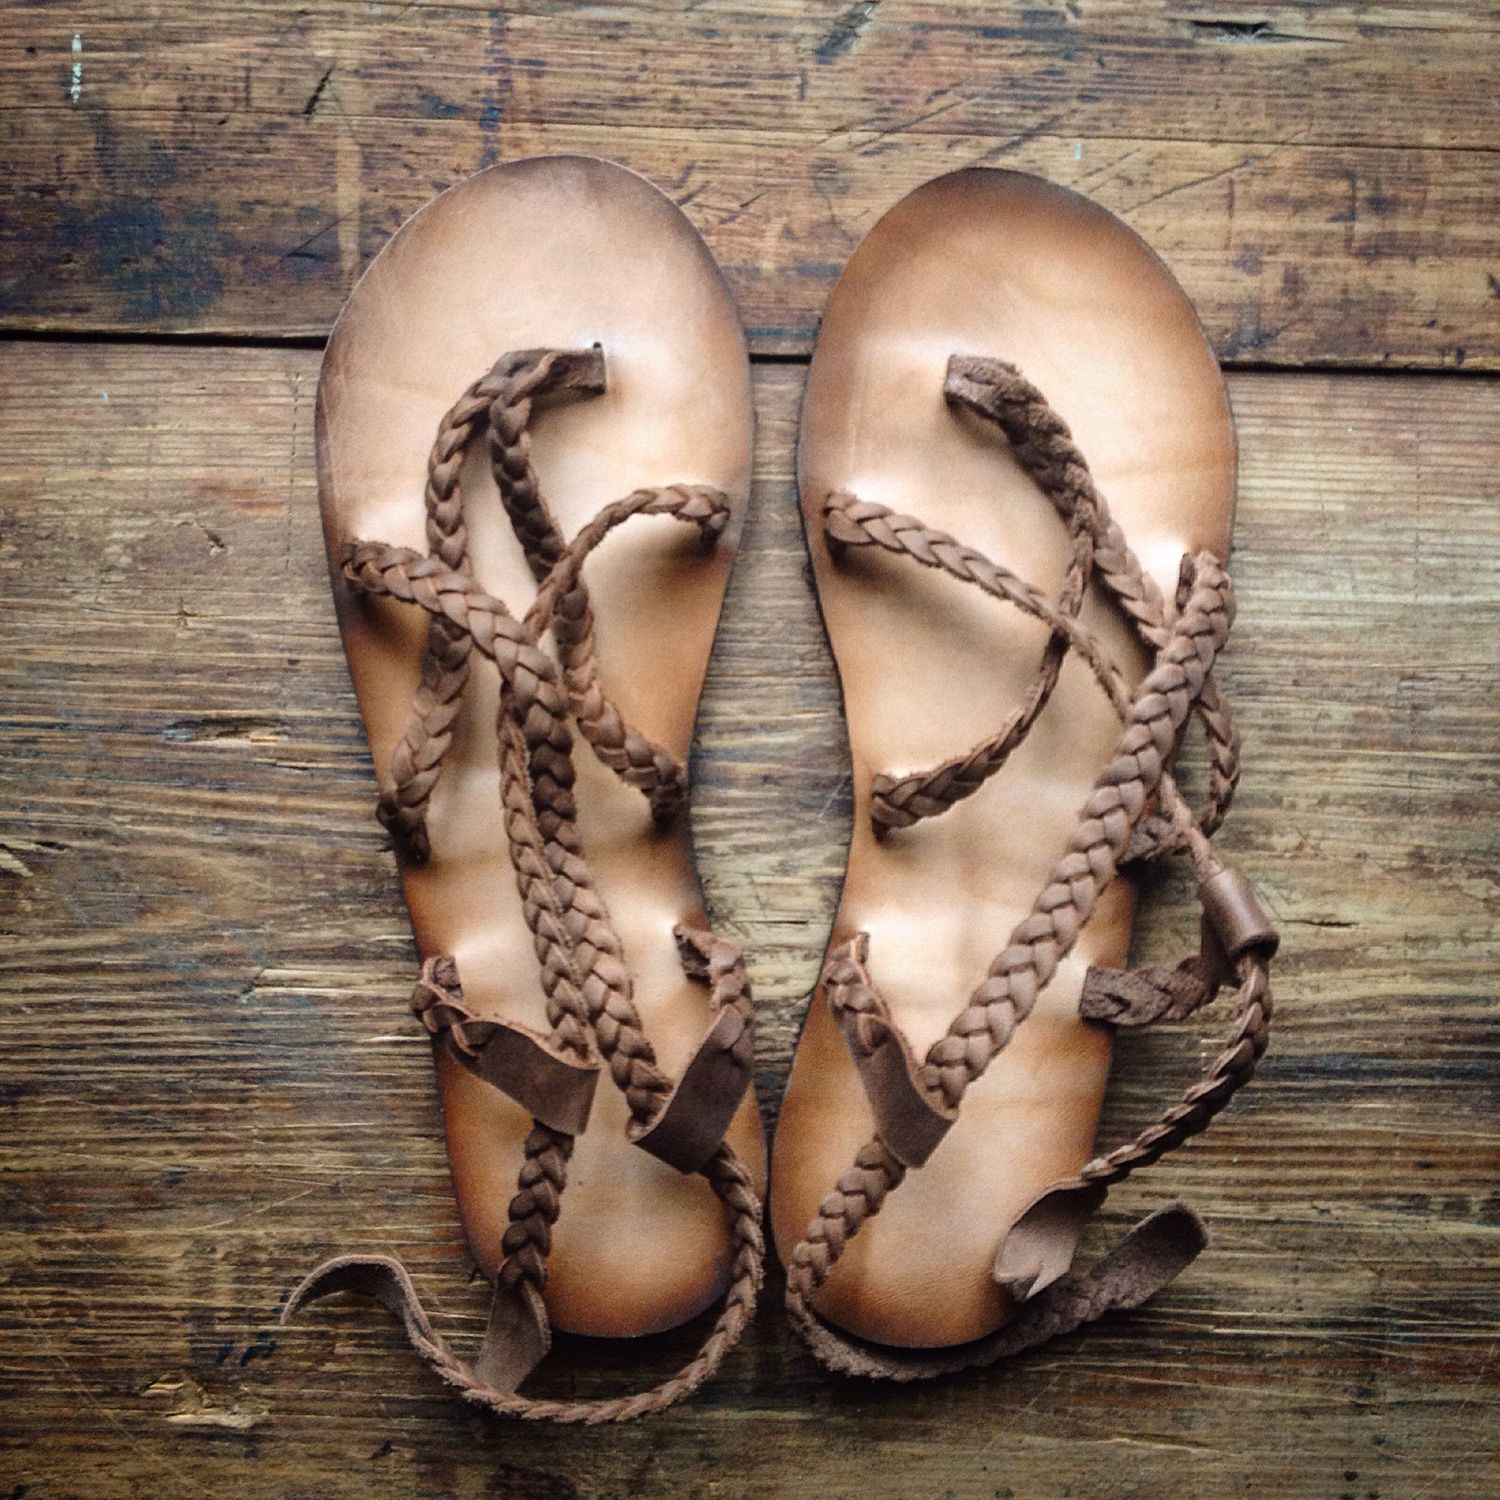 Lightweight leather sandals with braided straps, Sandals, St. Petersburg,  Фото №1